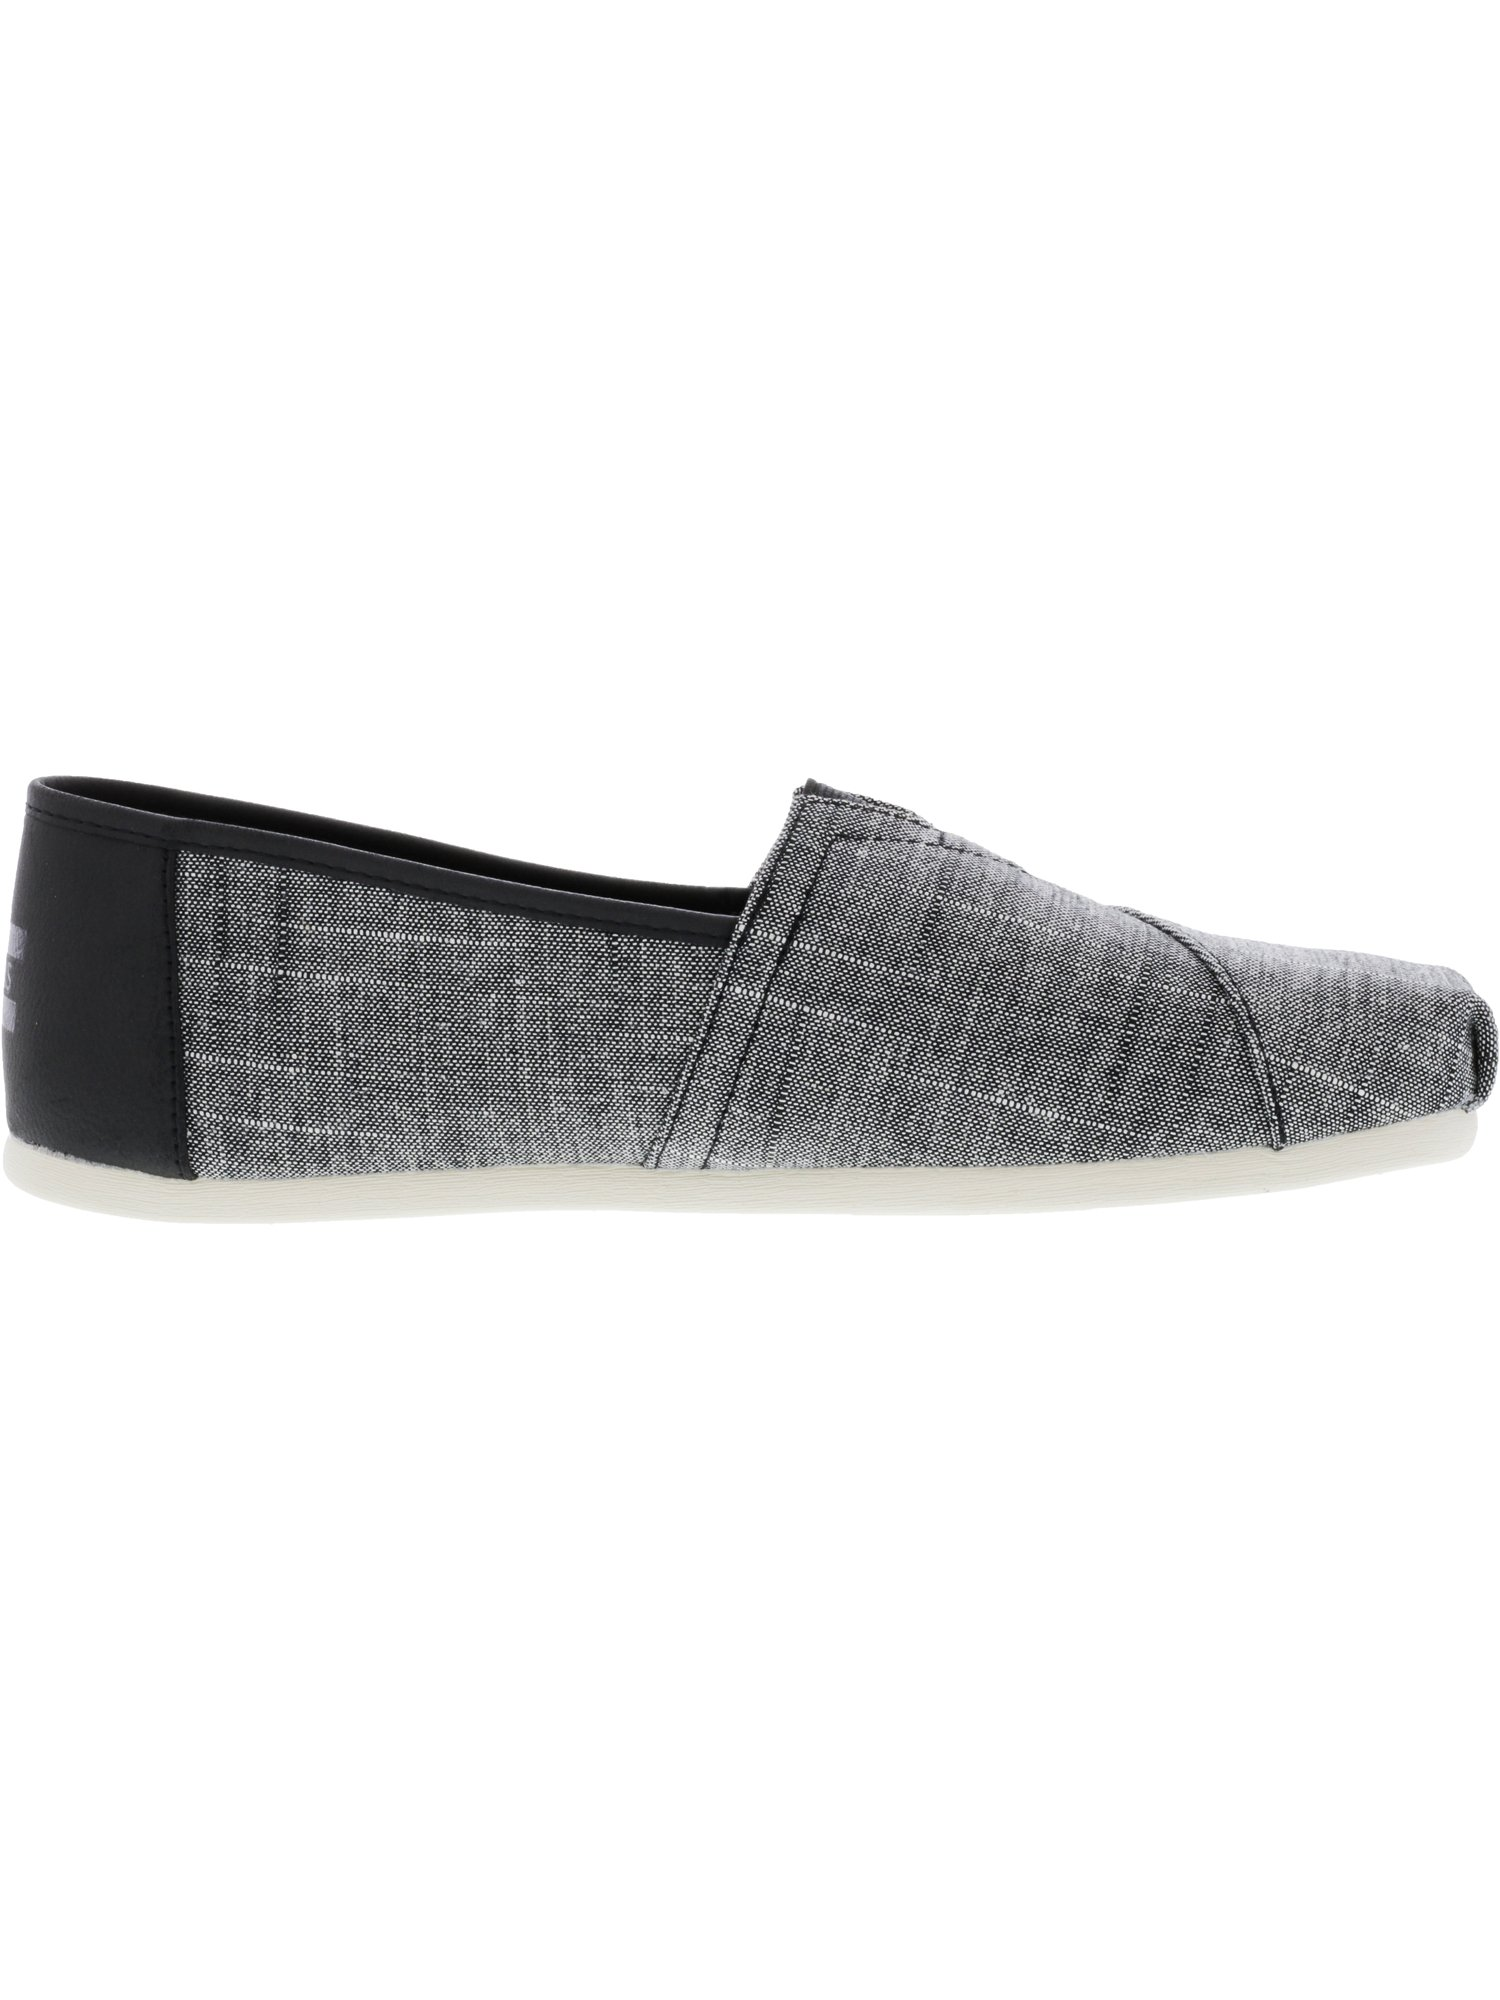 TOMS Men's Classic Textured Chambray Black Trim Ankle-High Fabric Slip-on Shoes - 10.5M zcK1MqxC